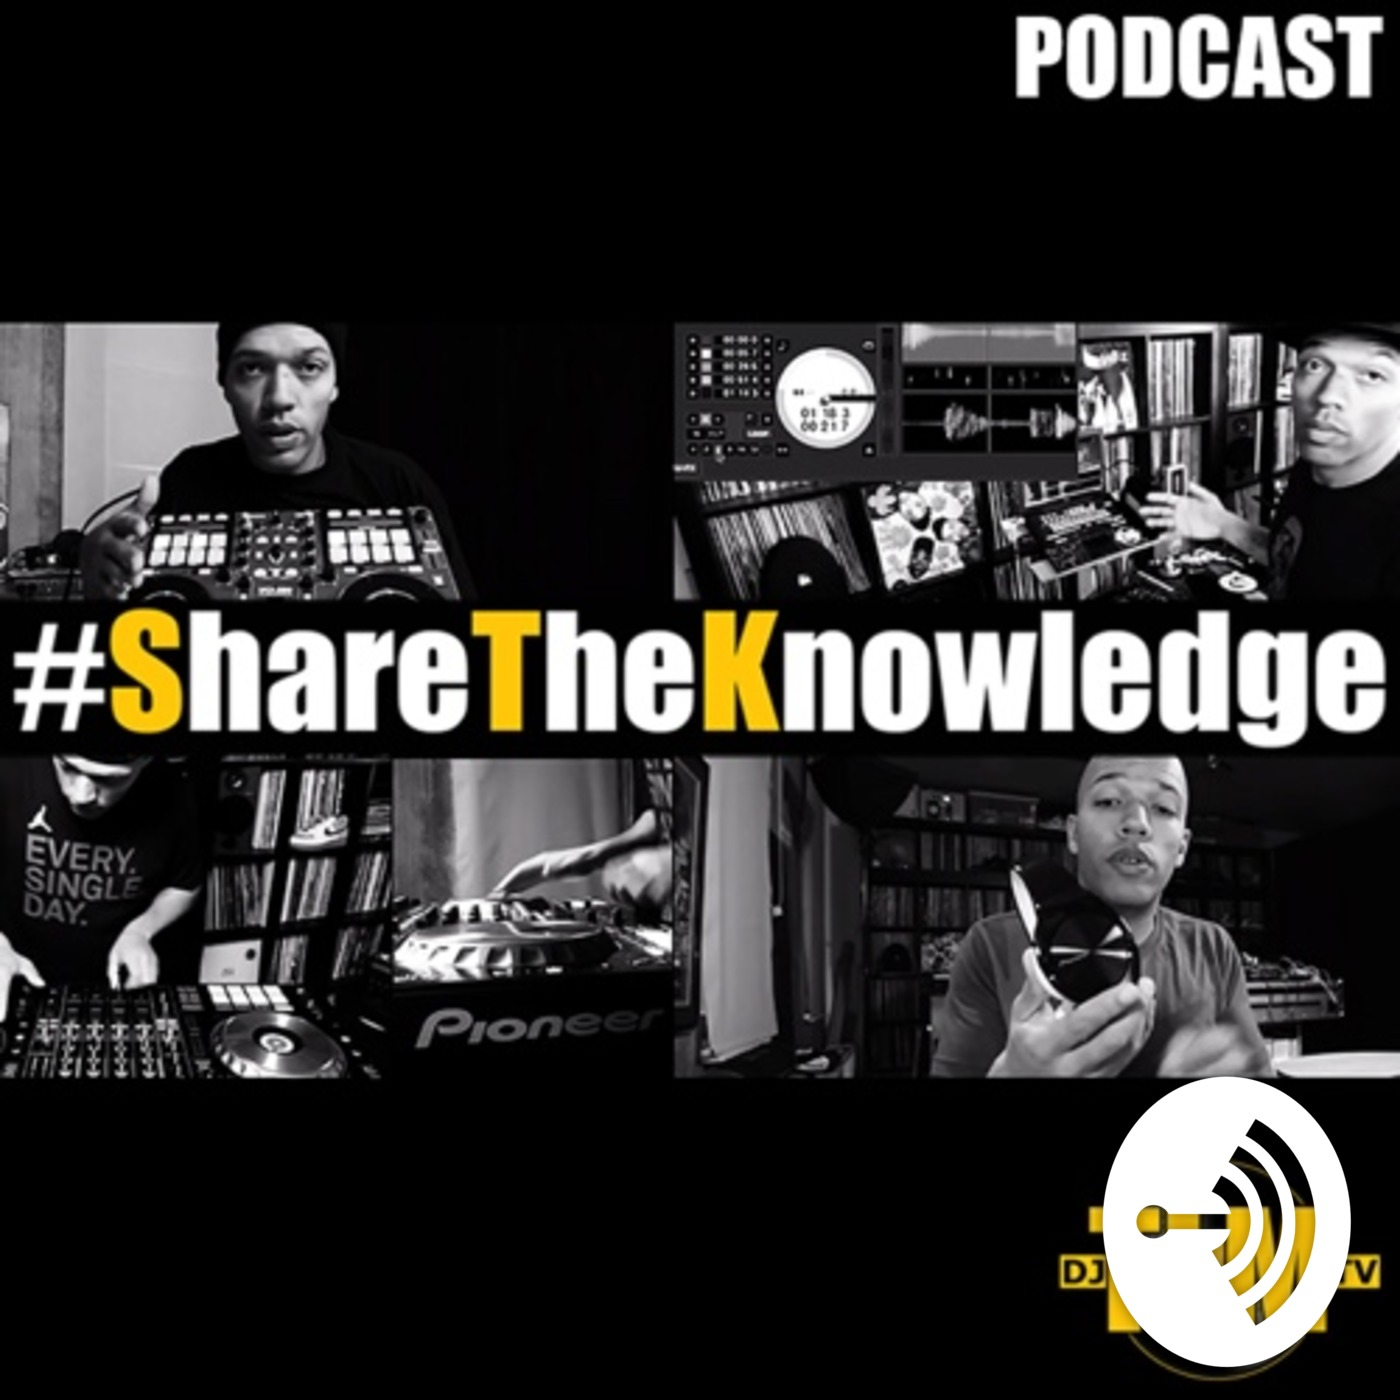 #ShareTheKnowledge podcast episode 65: song requests, finding priorities